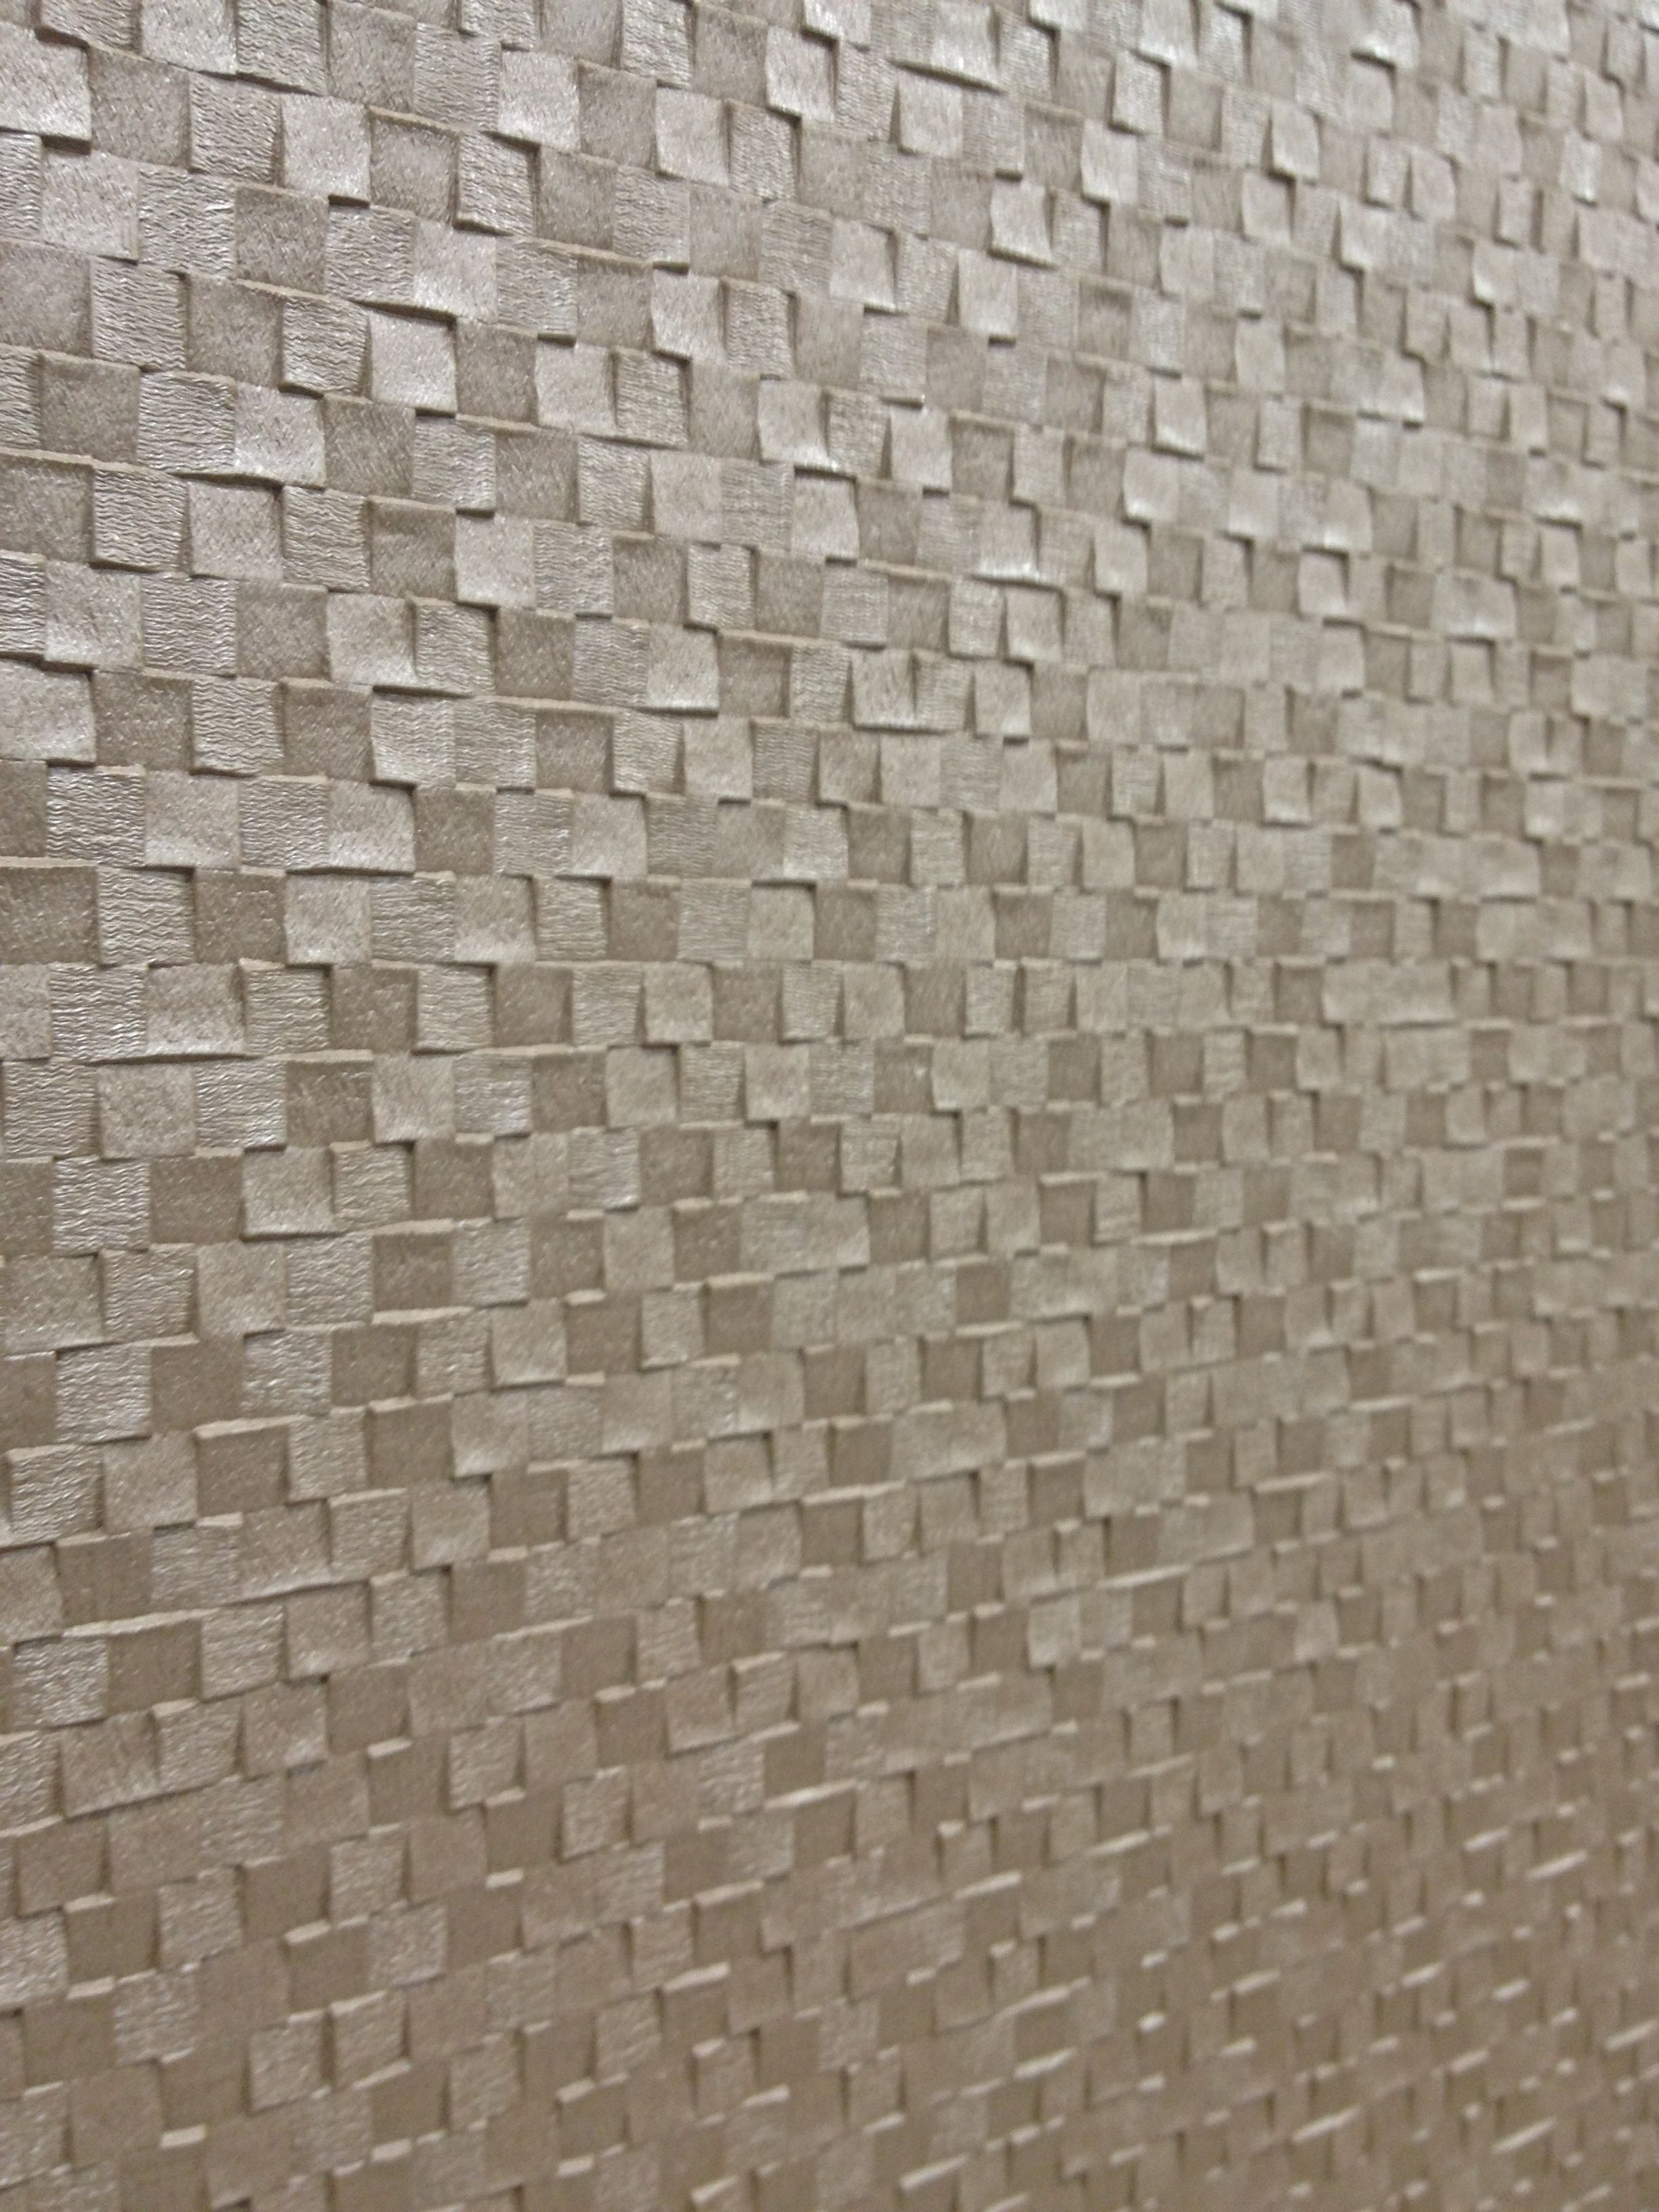 Textured Wallpaper I Don T Like Wallpaper But I Saw This At My Dentist Office And It Was Bathroom Wallpaper Textured Wallpaper Wallpaper Accent Wall Bathroom